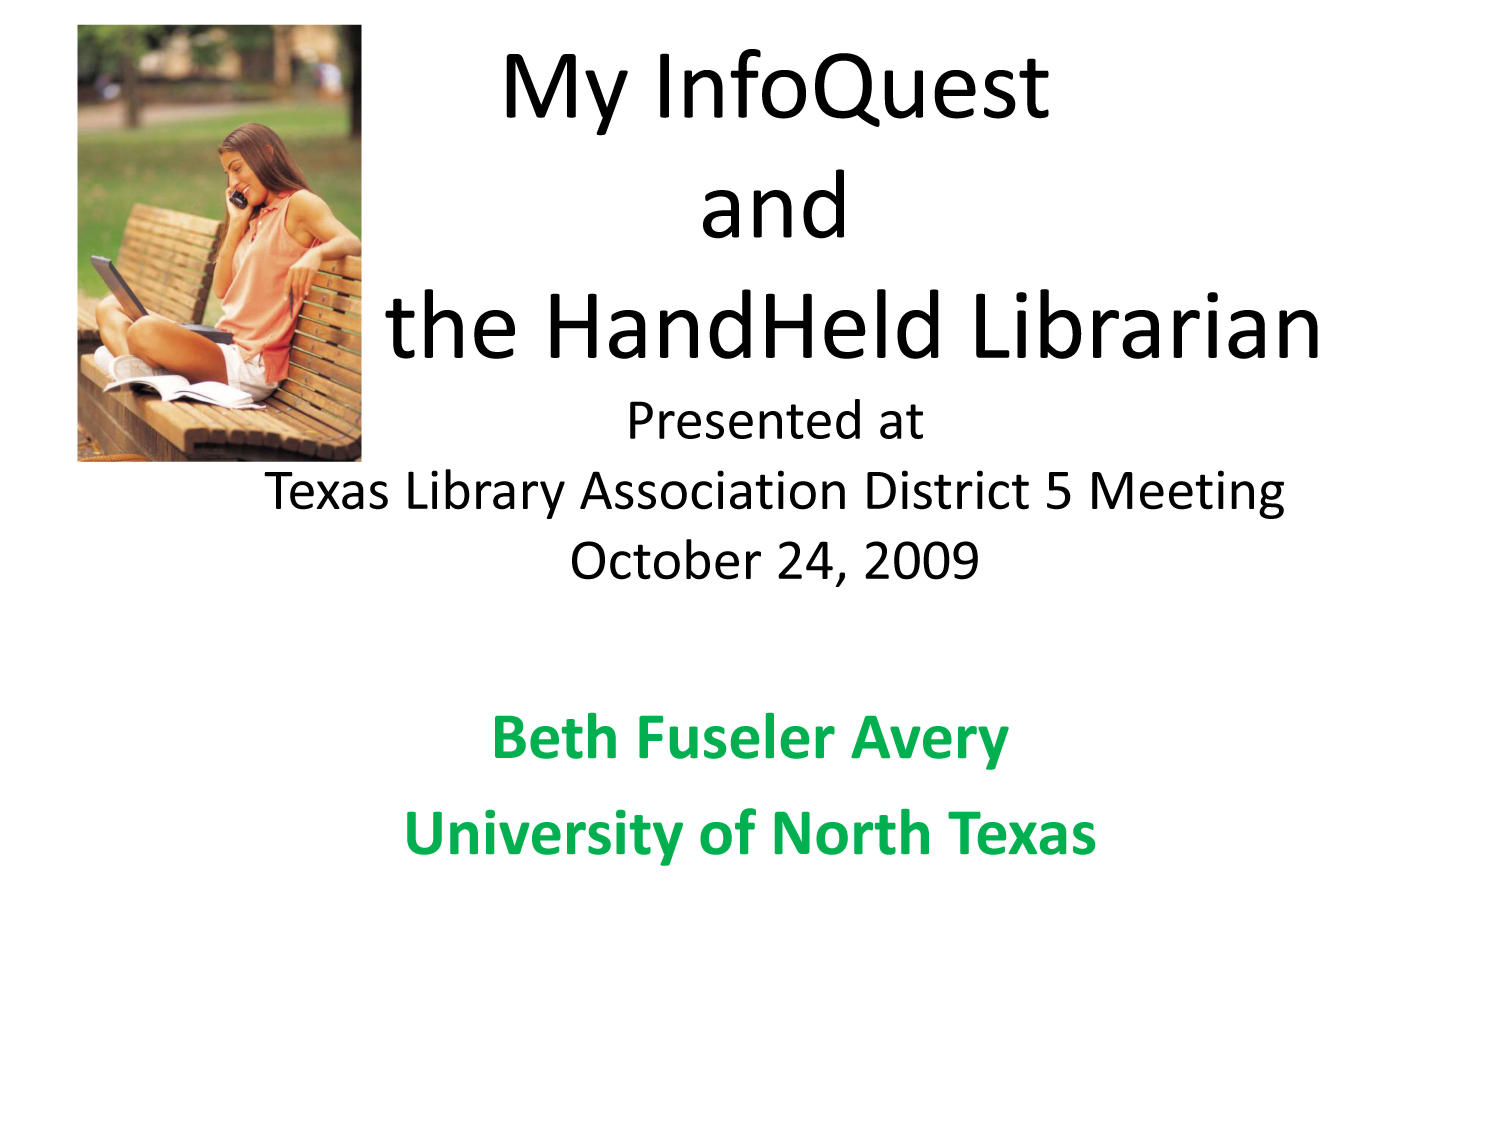 My InfoQuest and the Handheld Librarian                                                                                                      [Sequence #]: 1 of 24